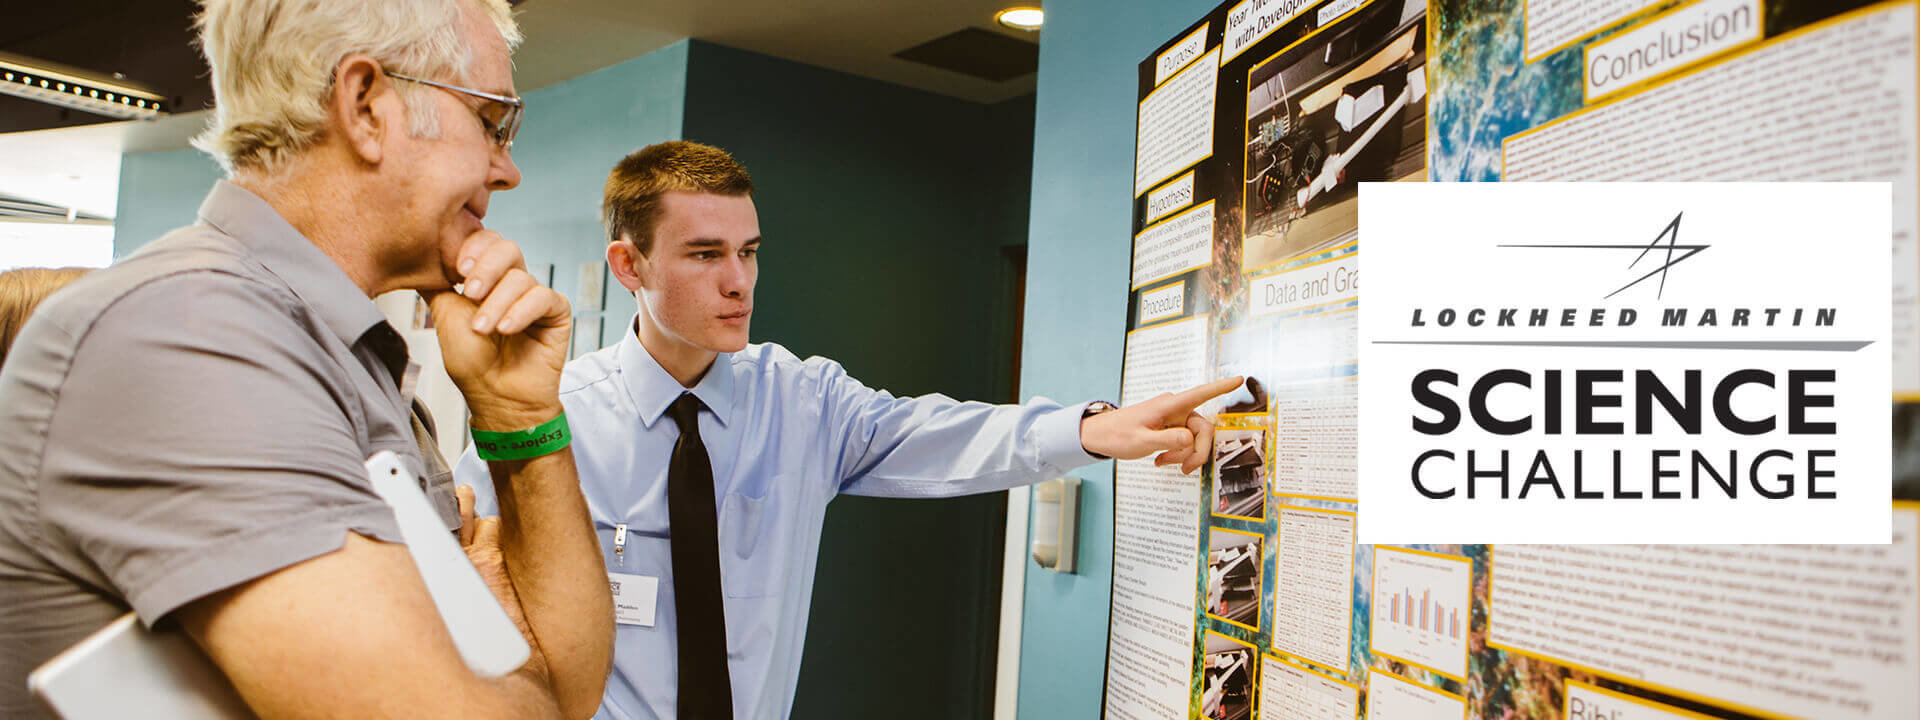 A high schooler explaining his research to a man at the Lockheed Martin Science Challenge.